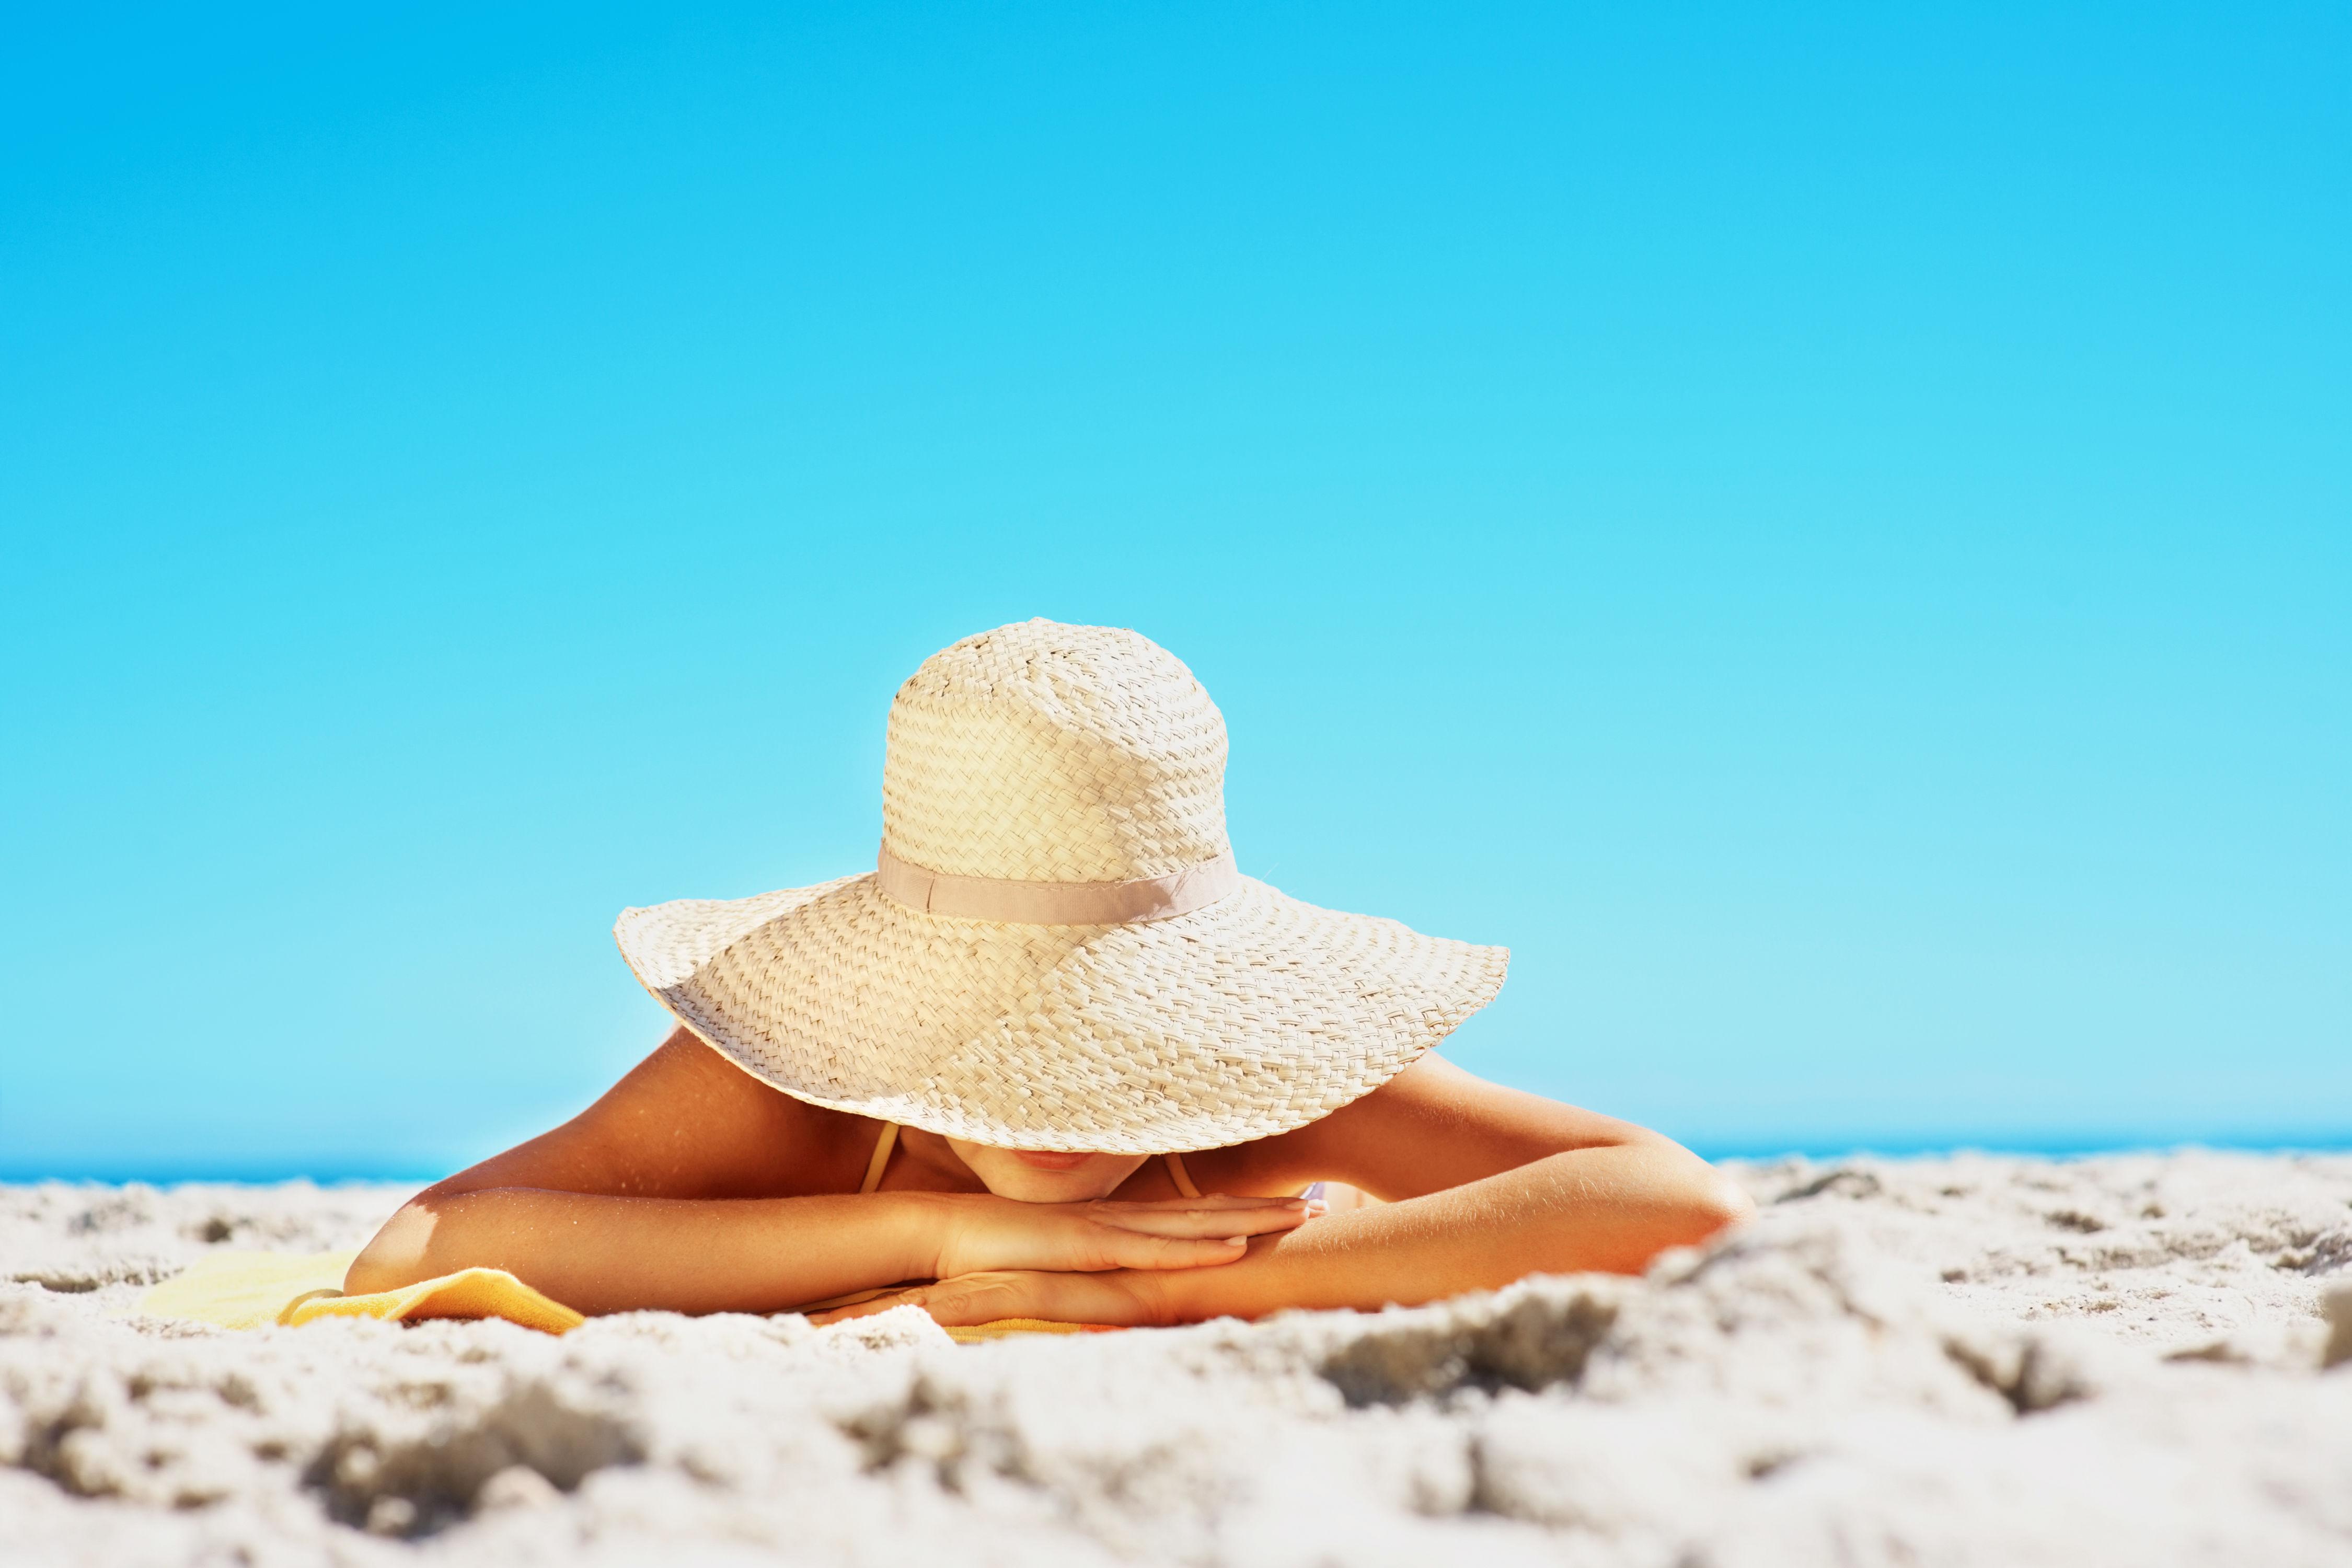 Woman Sun Bathing on Beach with Sun Hat